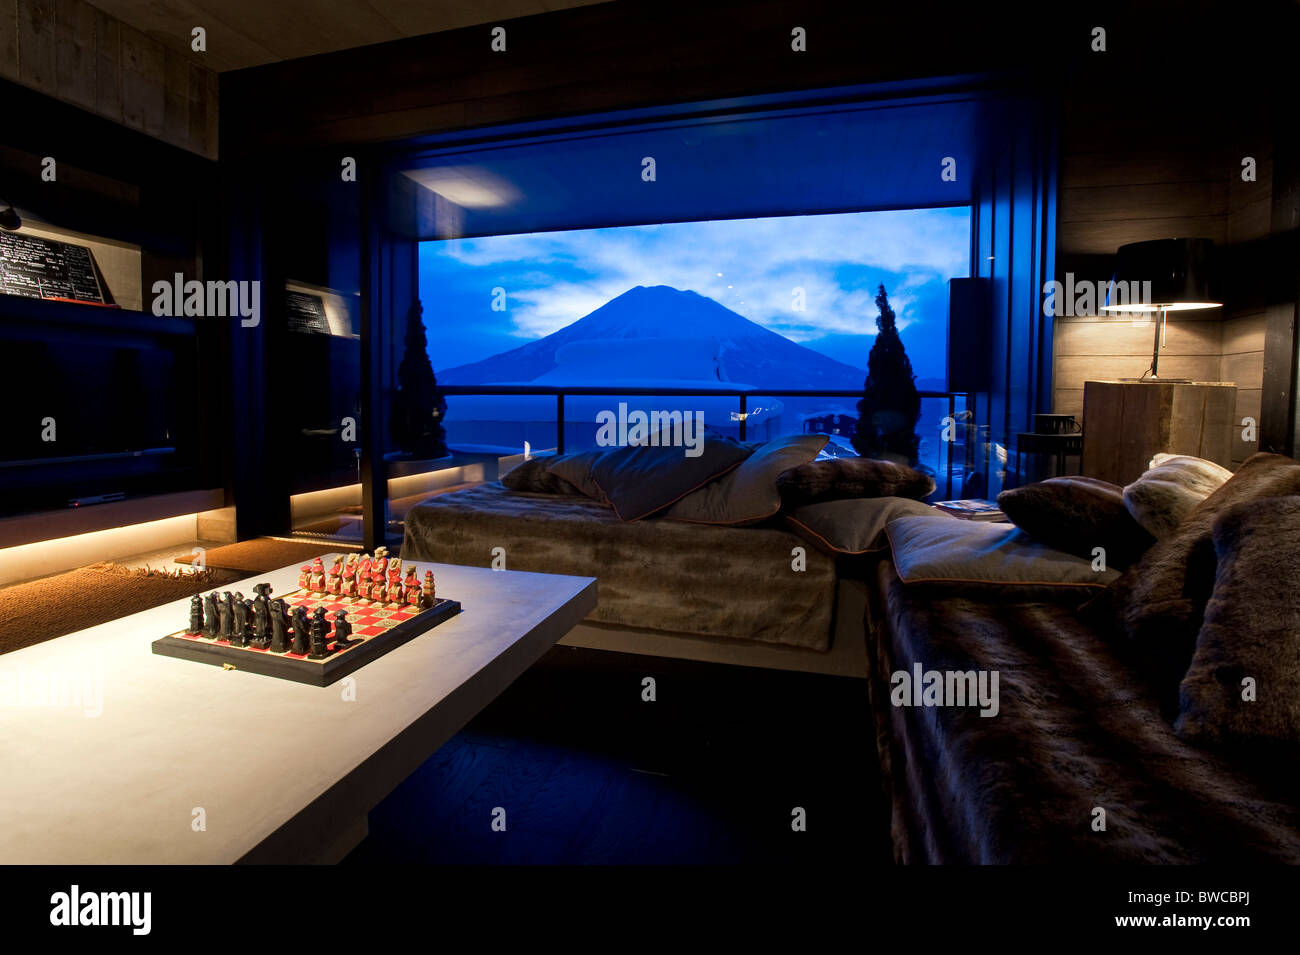 Photo Shows The Living Room Of A Loft At Suiboku Lofts With Views - Living room shows